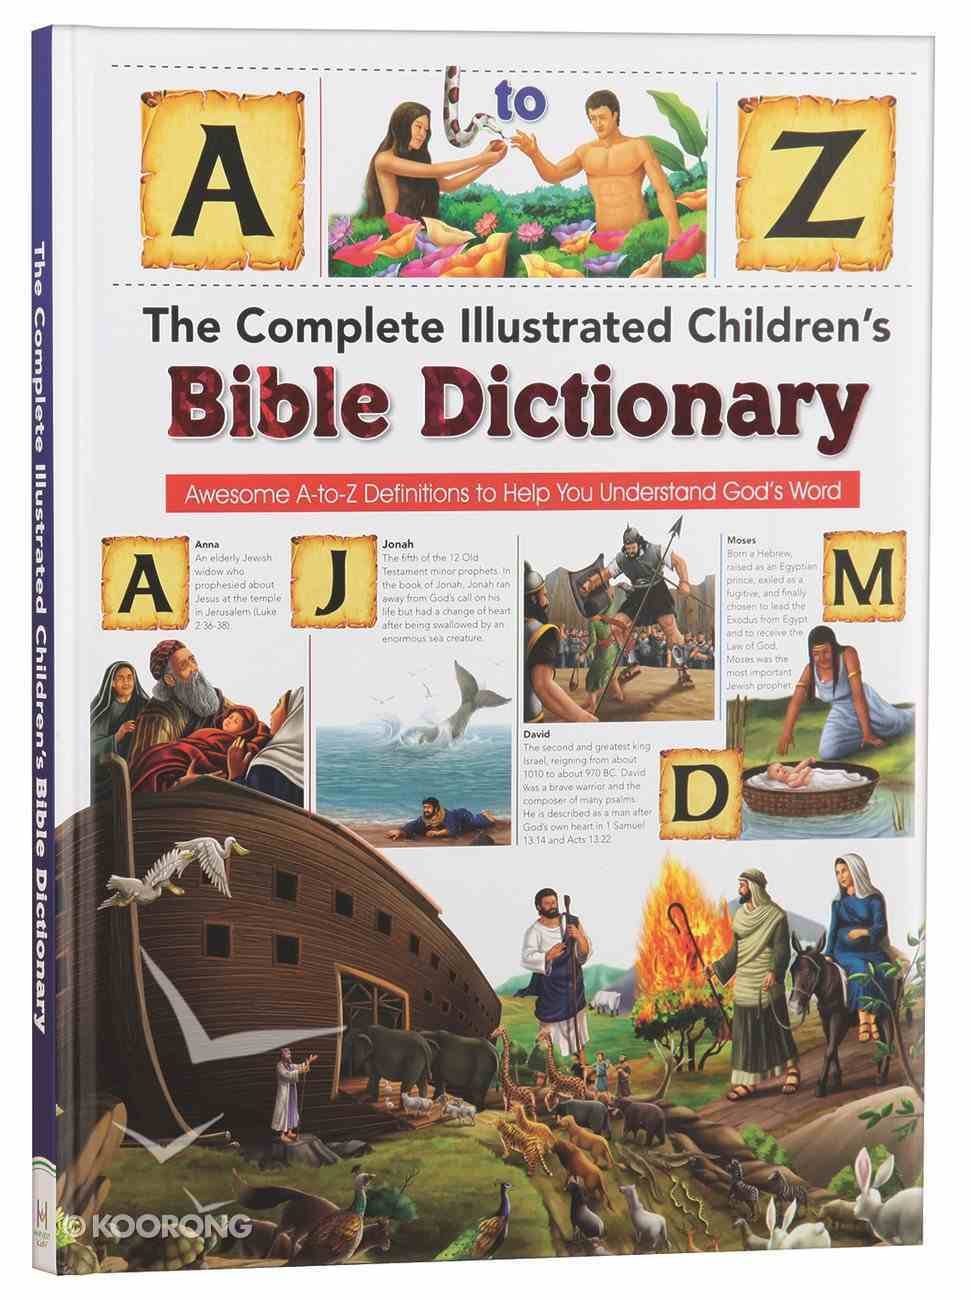 The Complete Illustrated Children's Bible Dictionary: Awesome A-To-Z Definitions to Help You Understand God's Word Padded Hardback